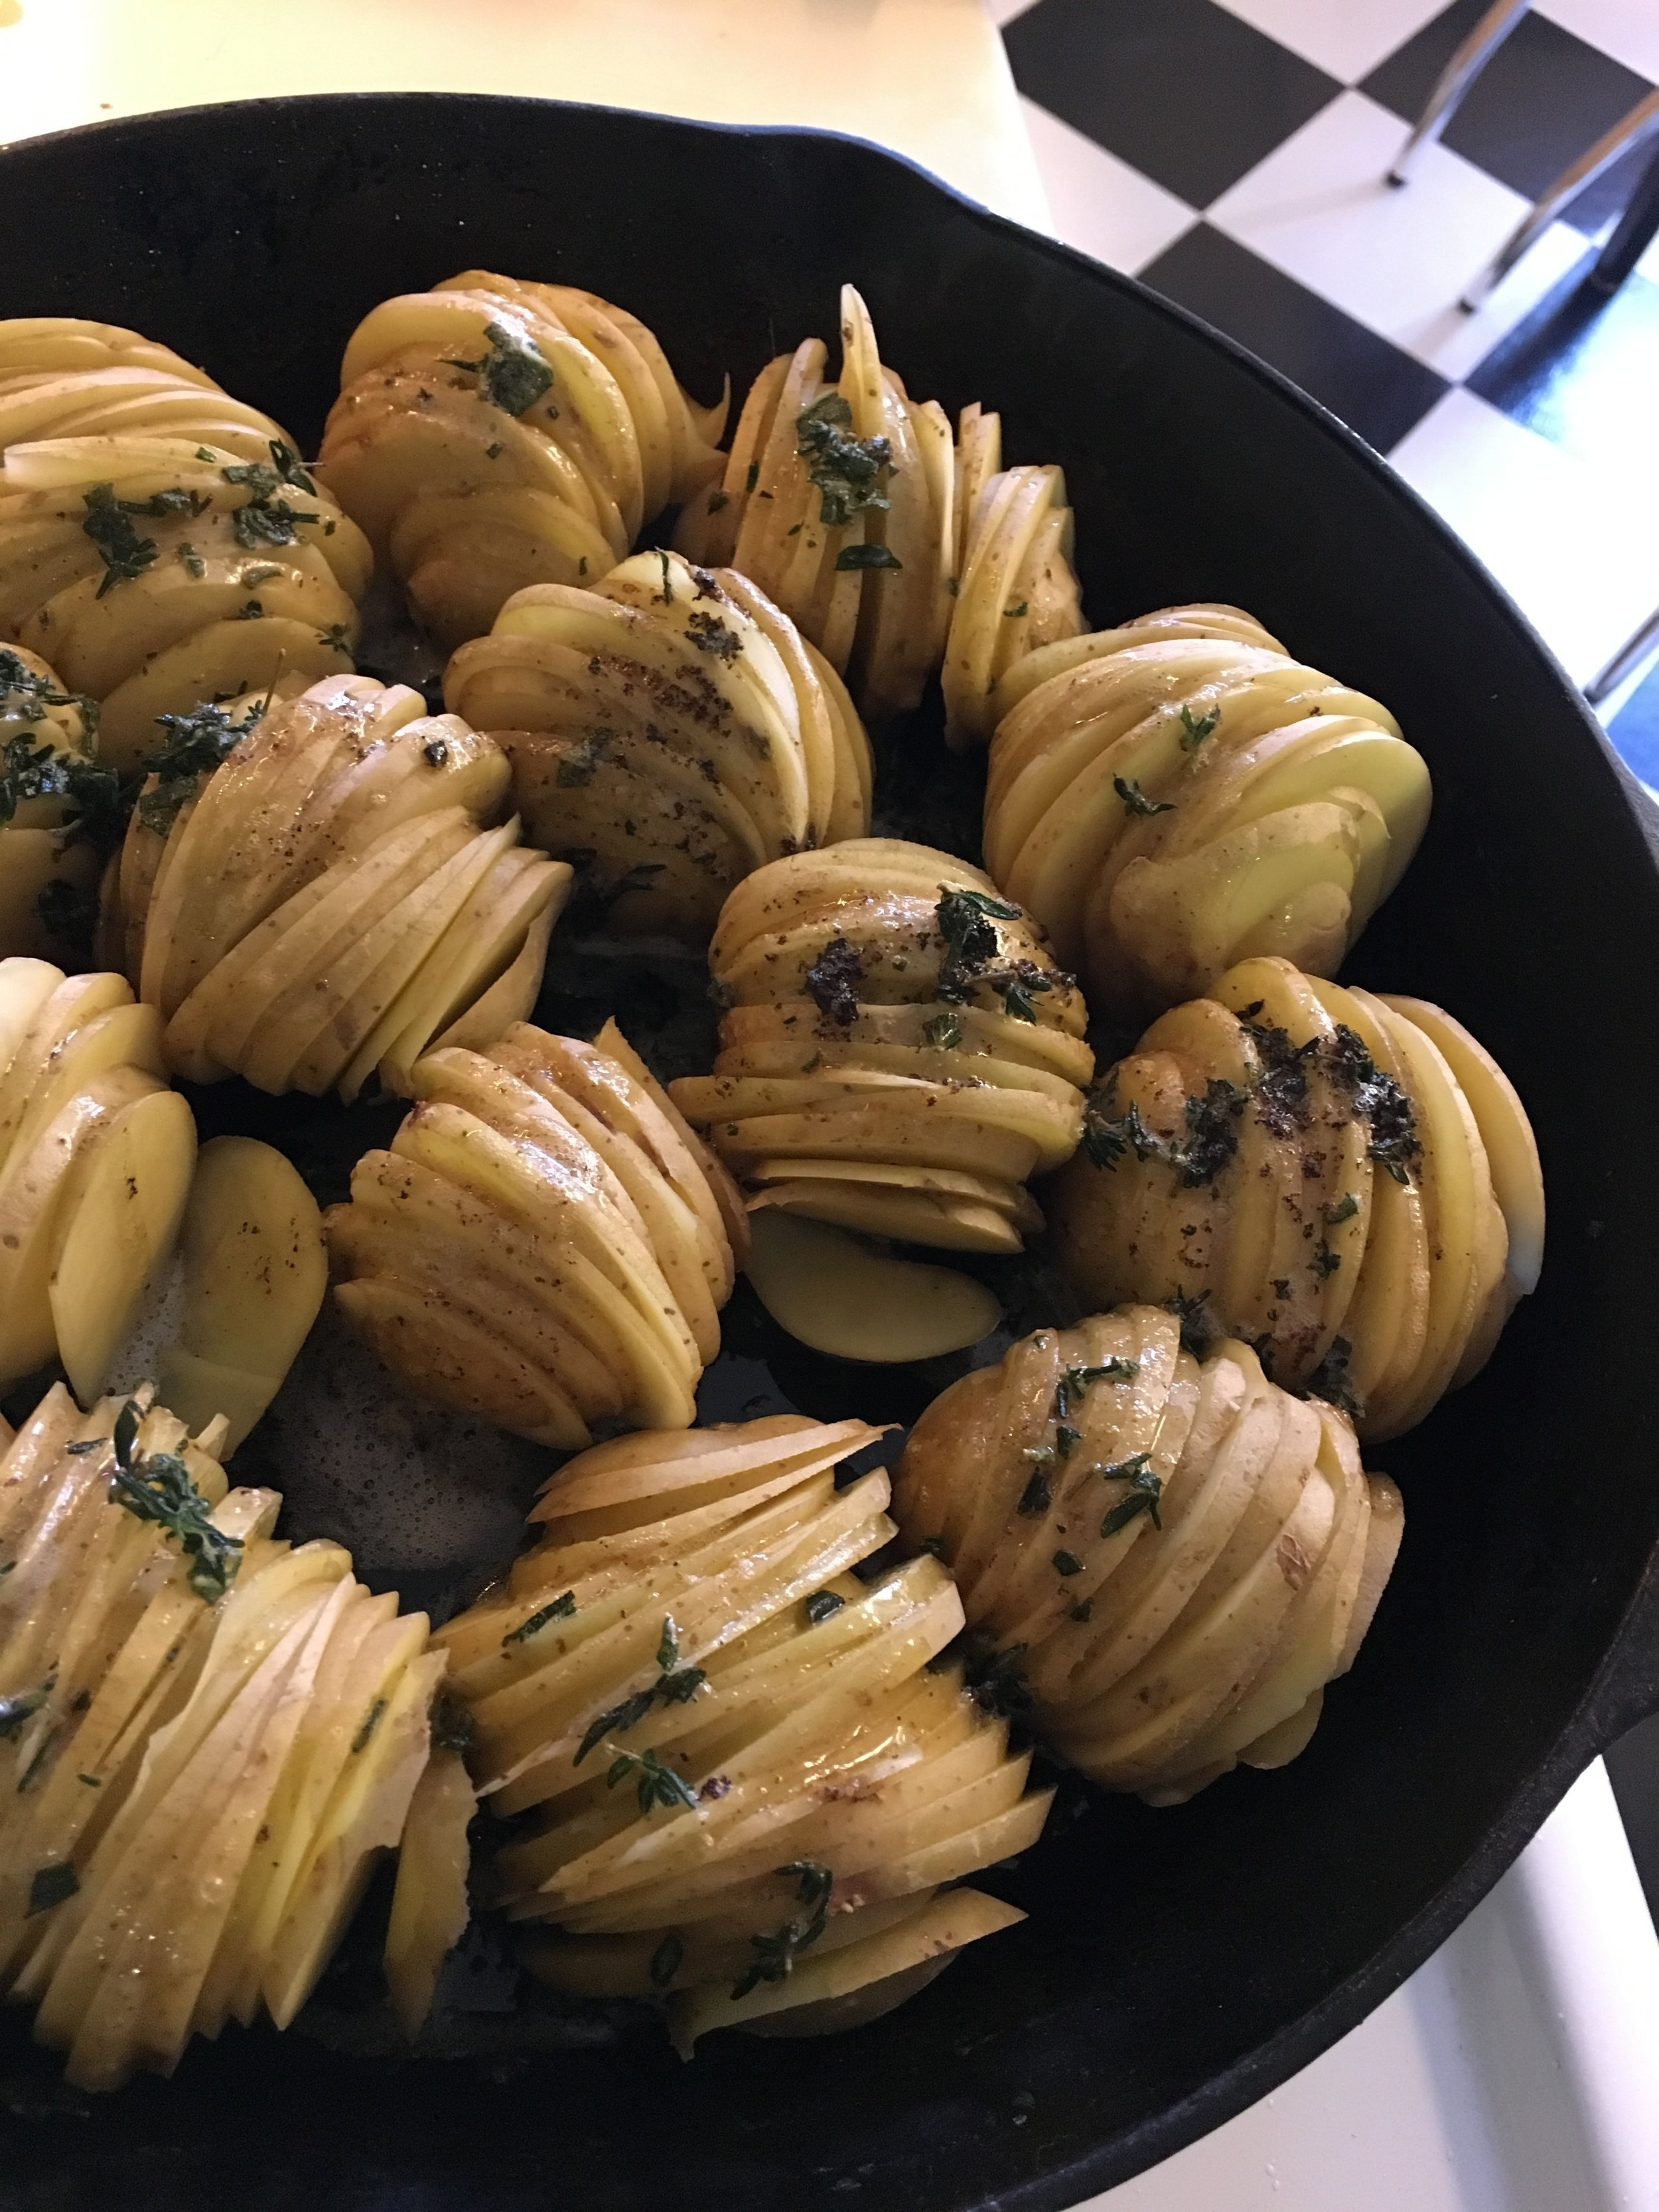 My first time making hasselback potatoes. A real success!